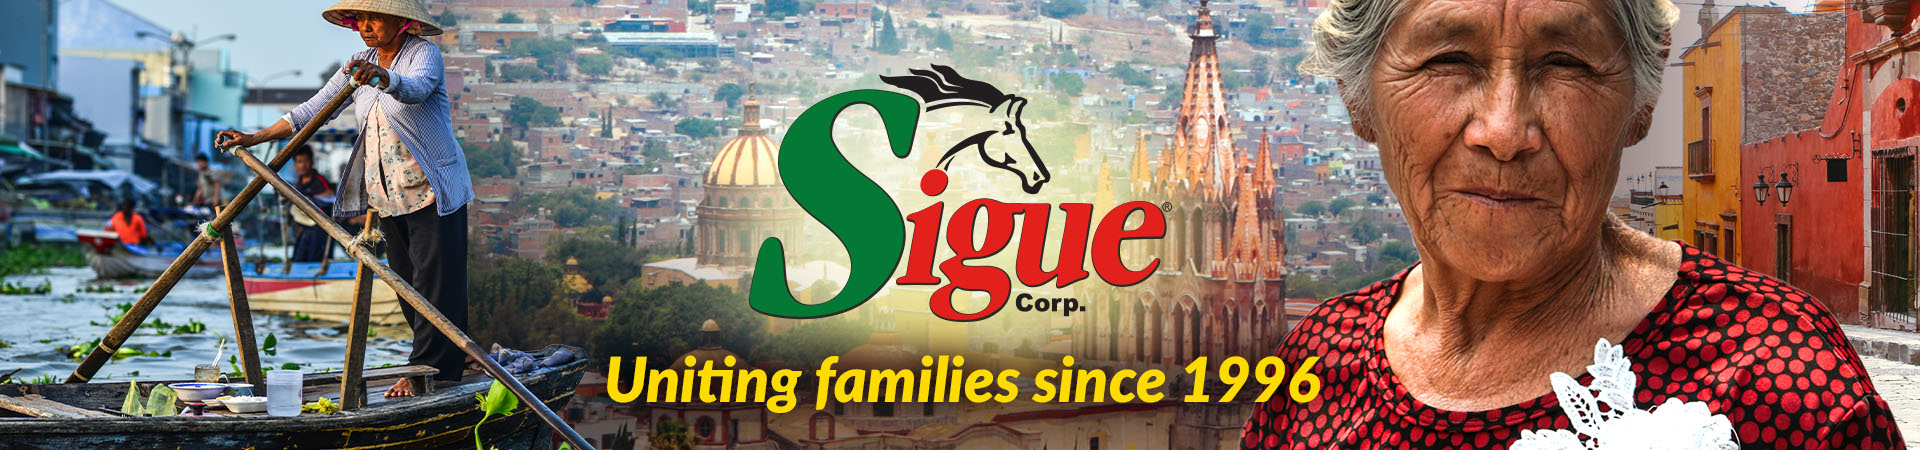 Sigue - Our History